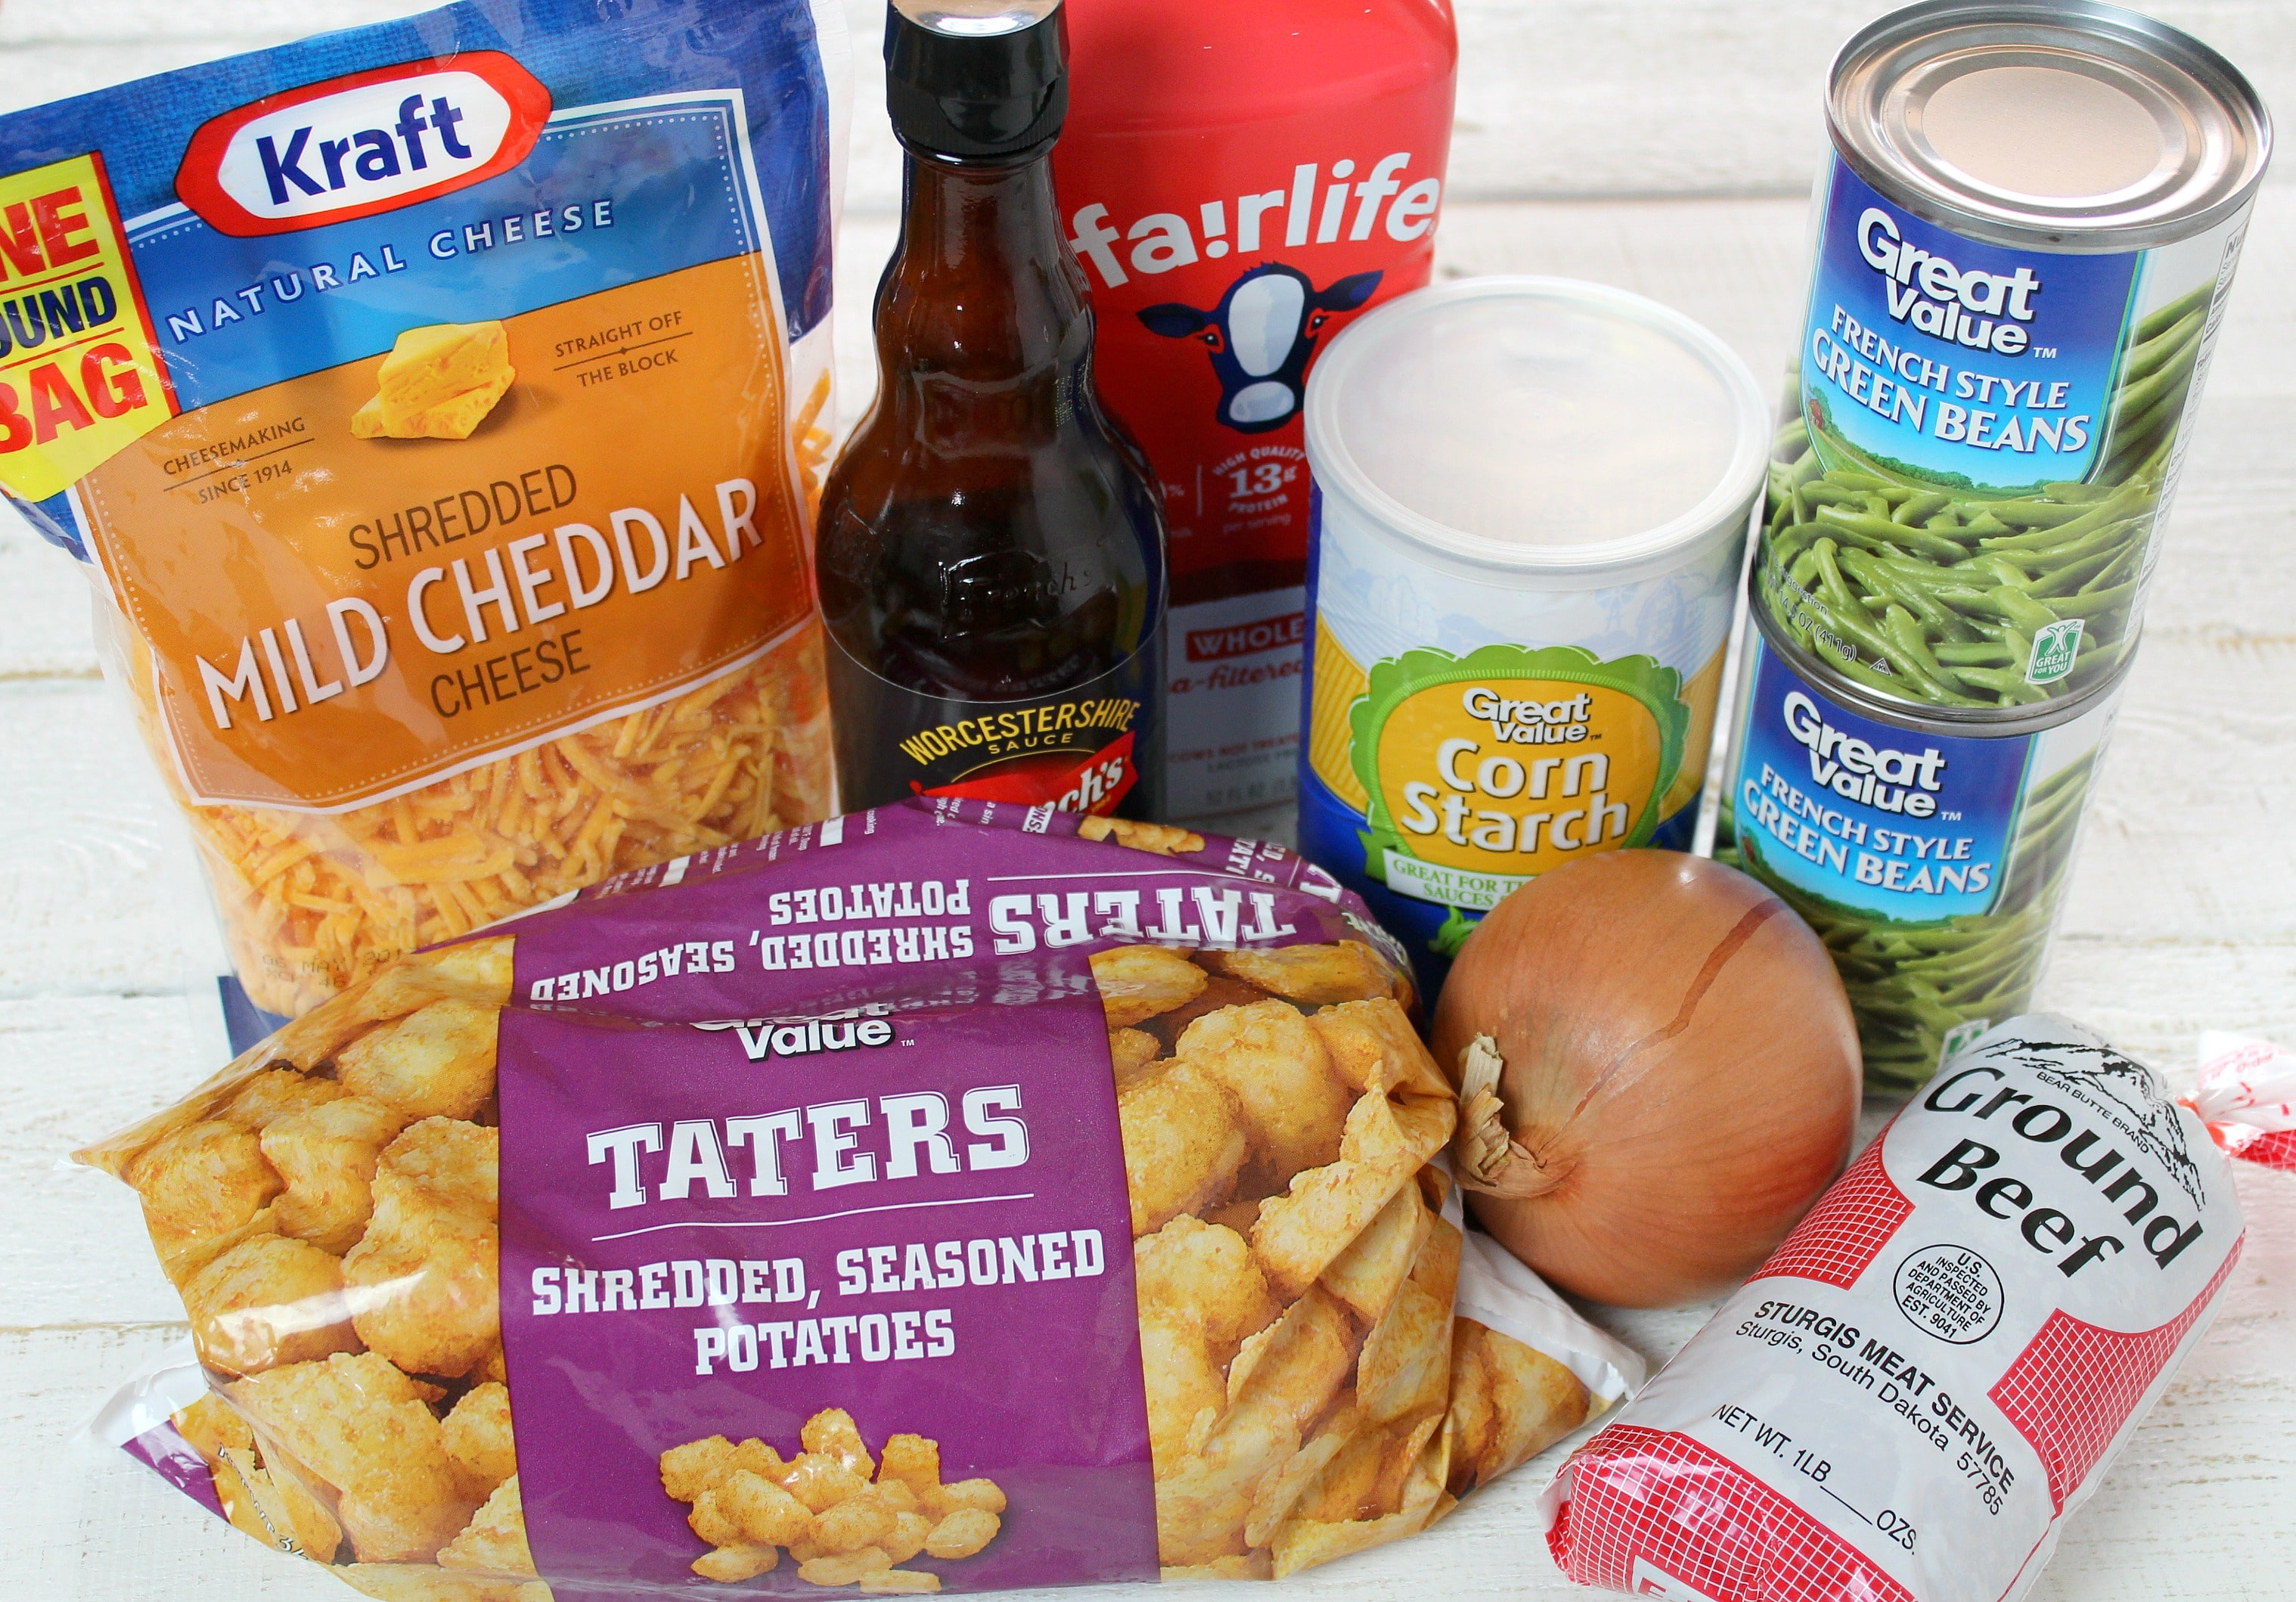 Tater Tot Casserole ingredients - you need shredded mild cheddar cheese, worcester sauce, milk, corn starch, green beans, ground beef and tater tots.